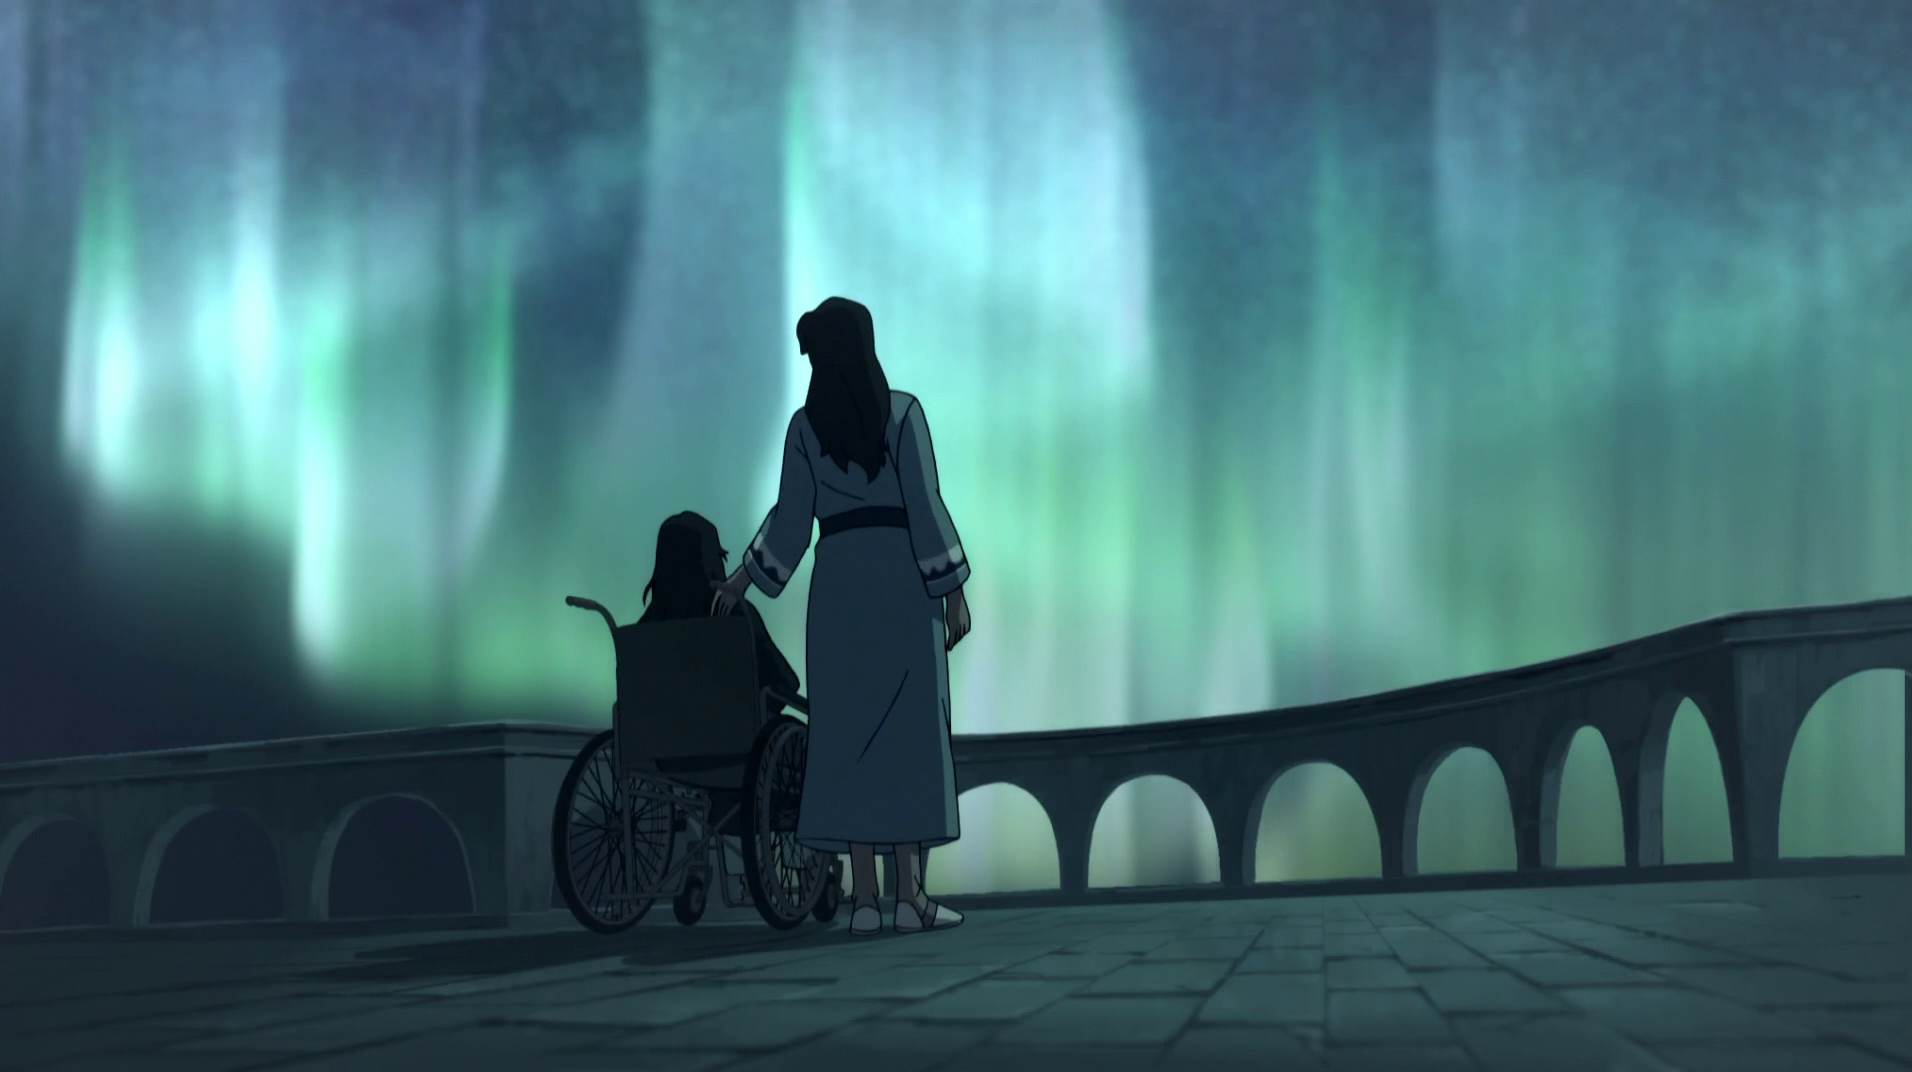 Season 4 ep 02 korra alone avatar the legend of korra photo